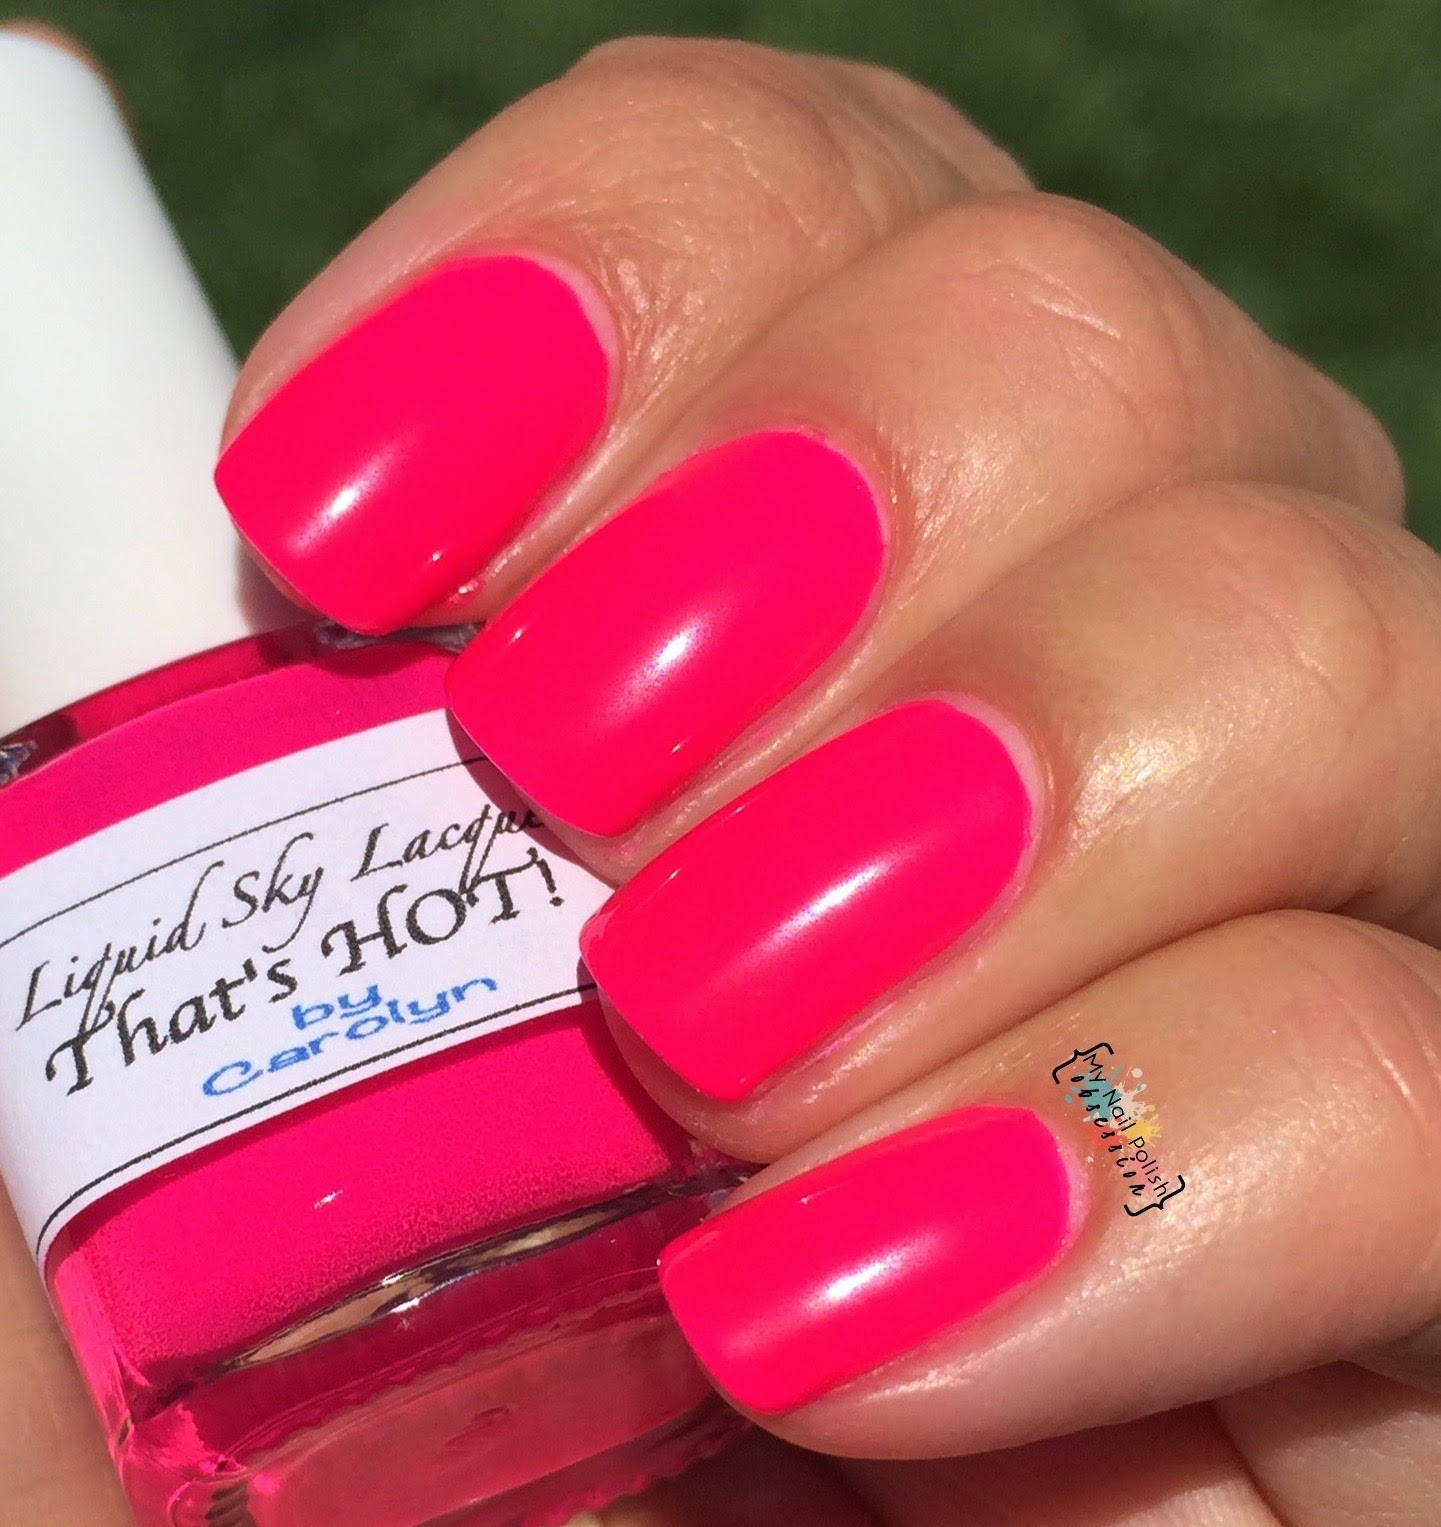 Liquid Sky Lacquer That's HOT!